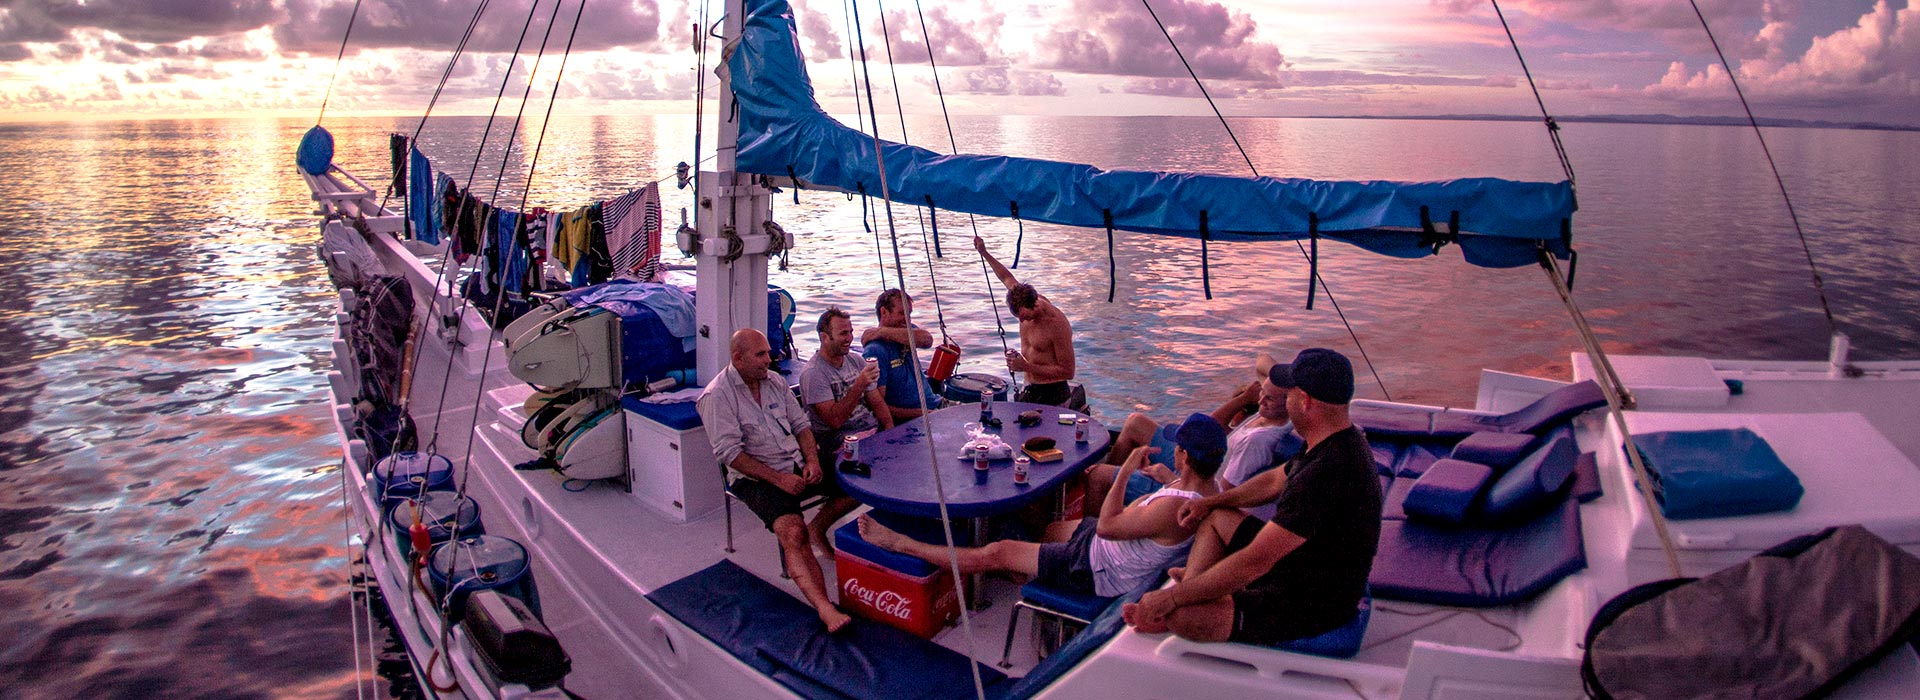 nomad-surf-charters-5